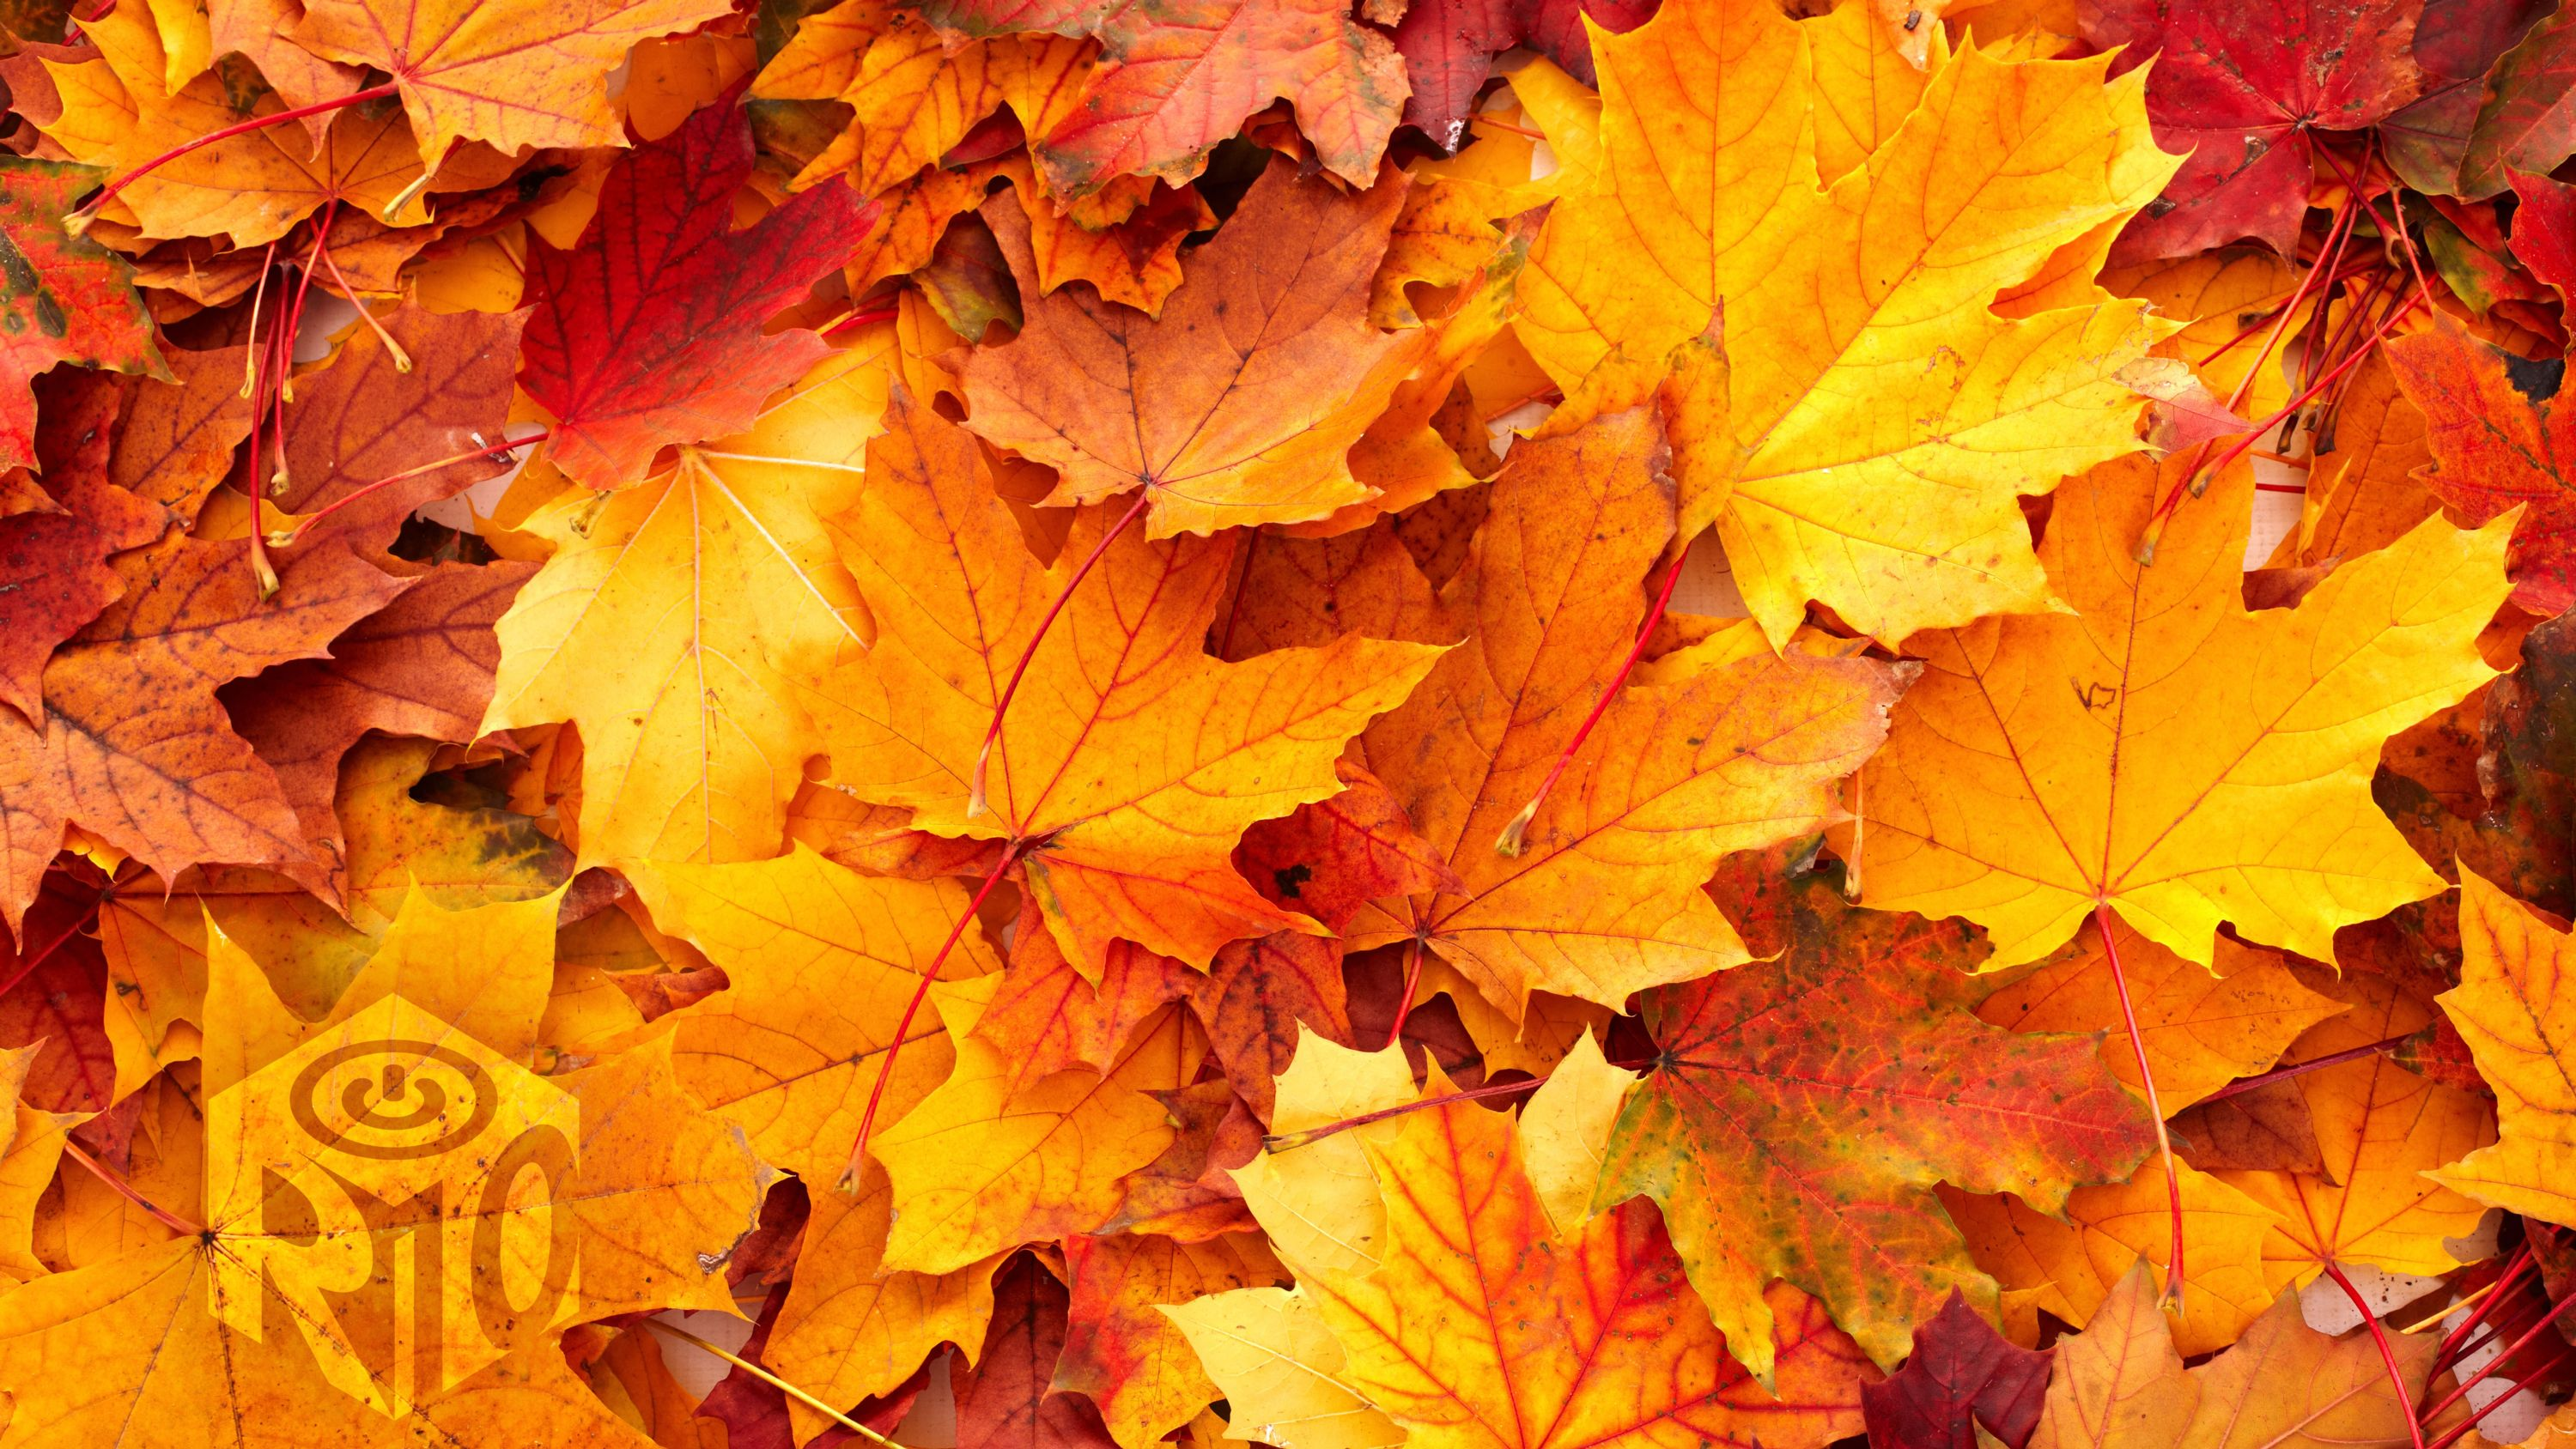 Autumn Leaves in a pile